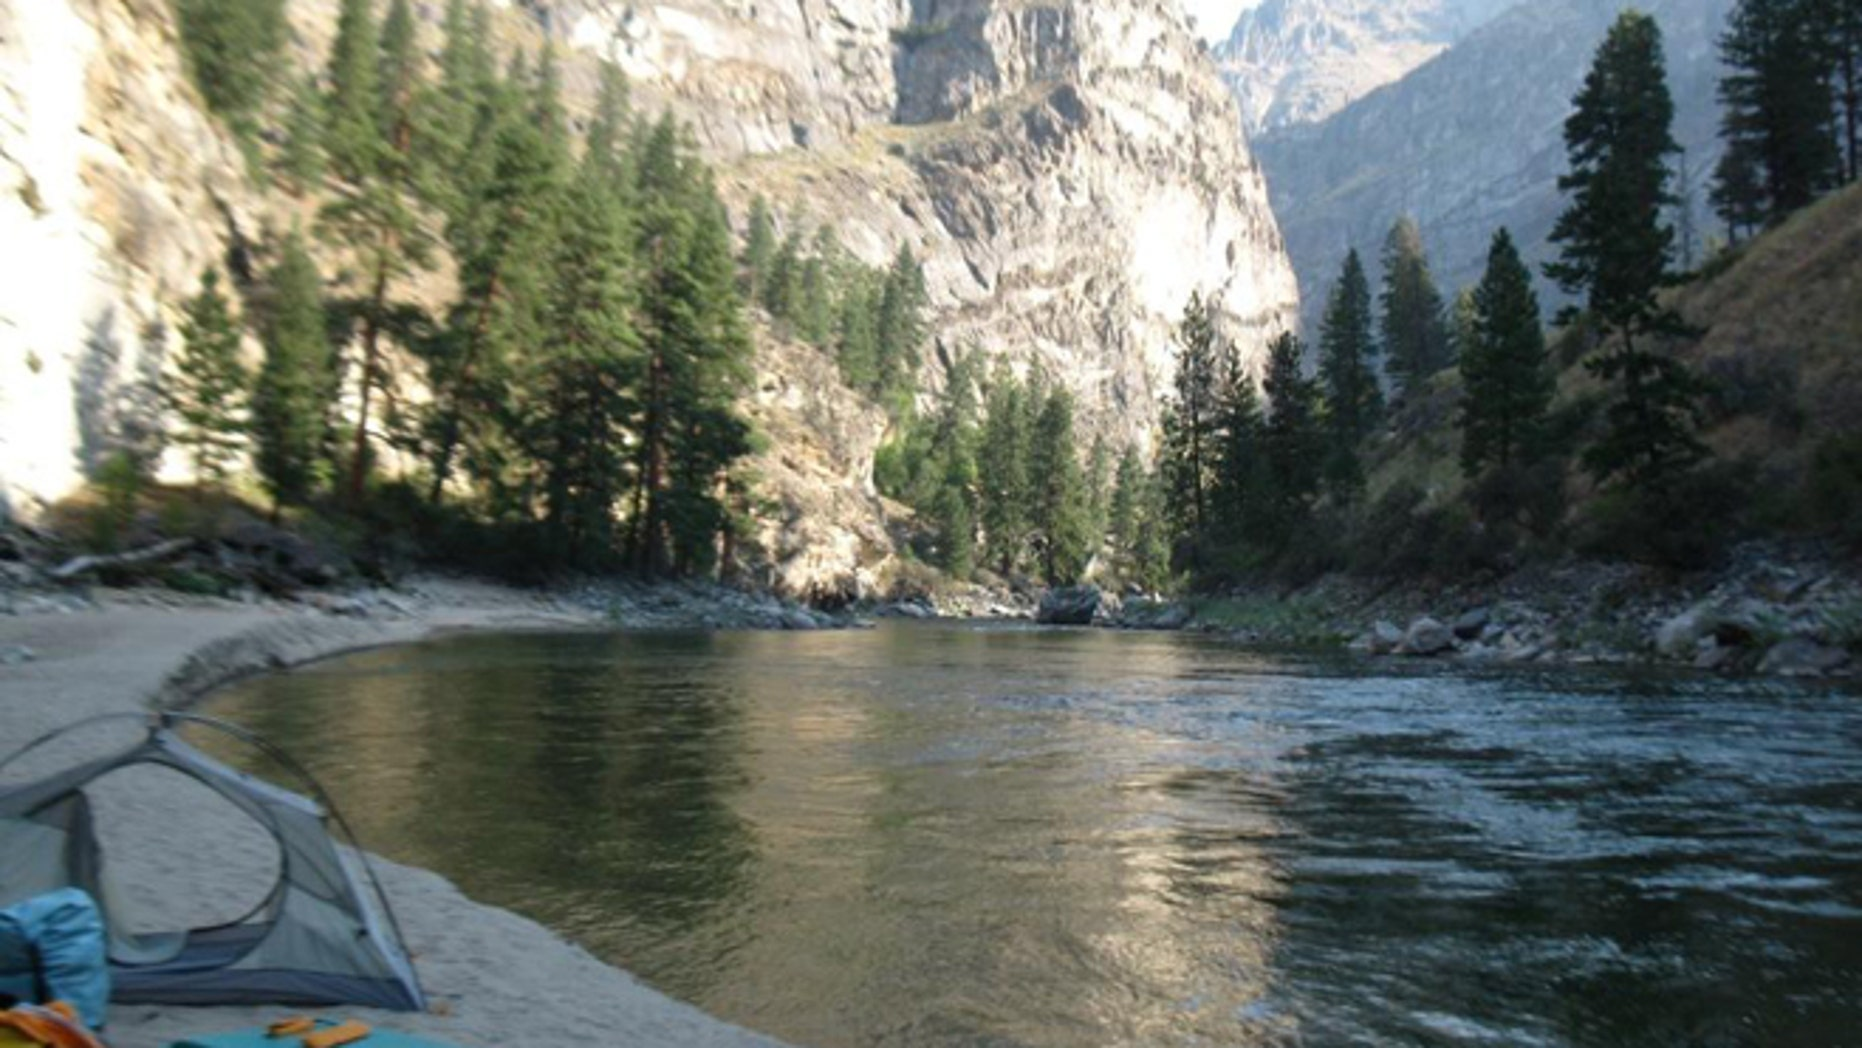 FILE: Undated: The Salmon River in the heart of the Frank Church-River of No Return Wilderness, Idaho.